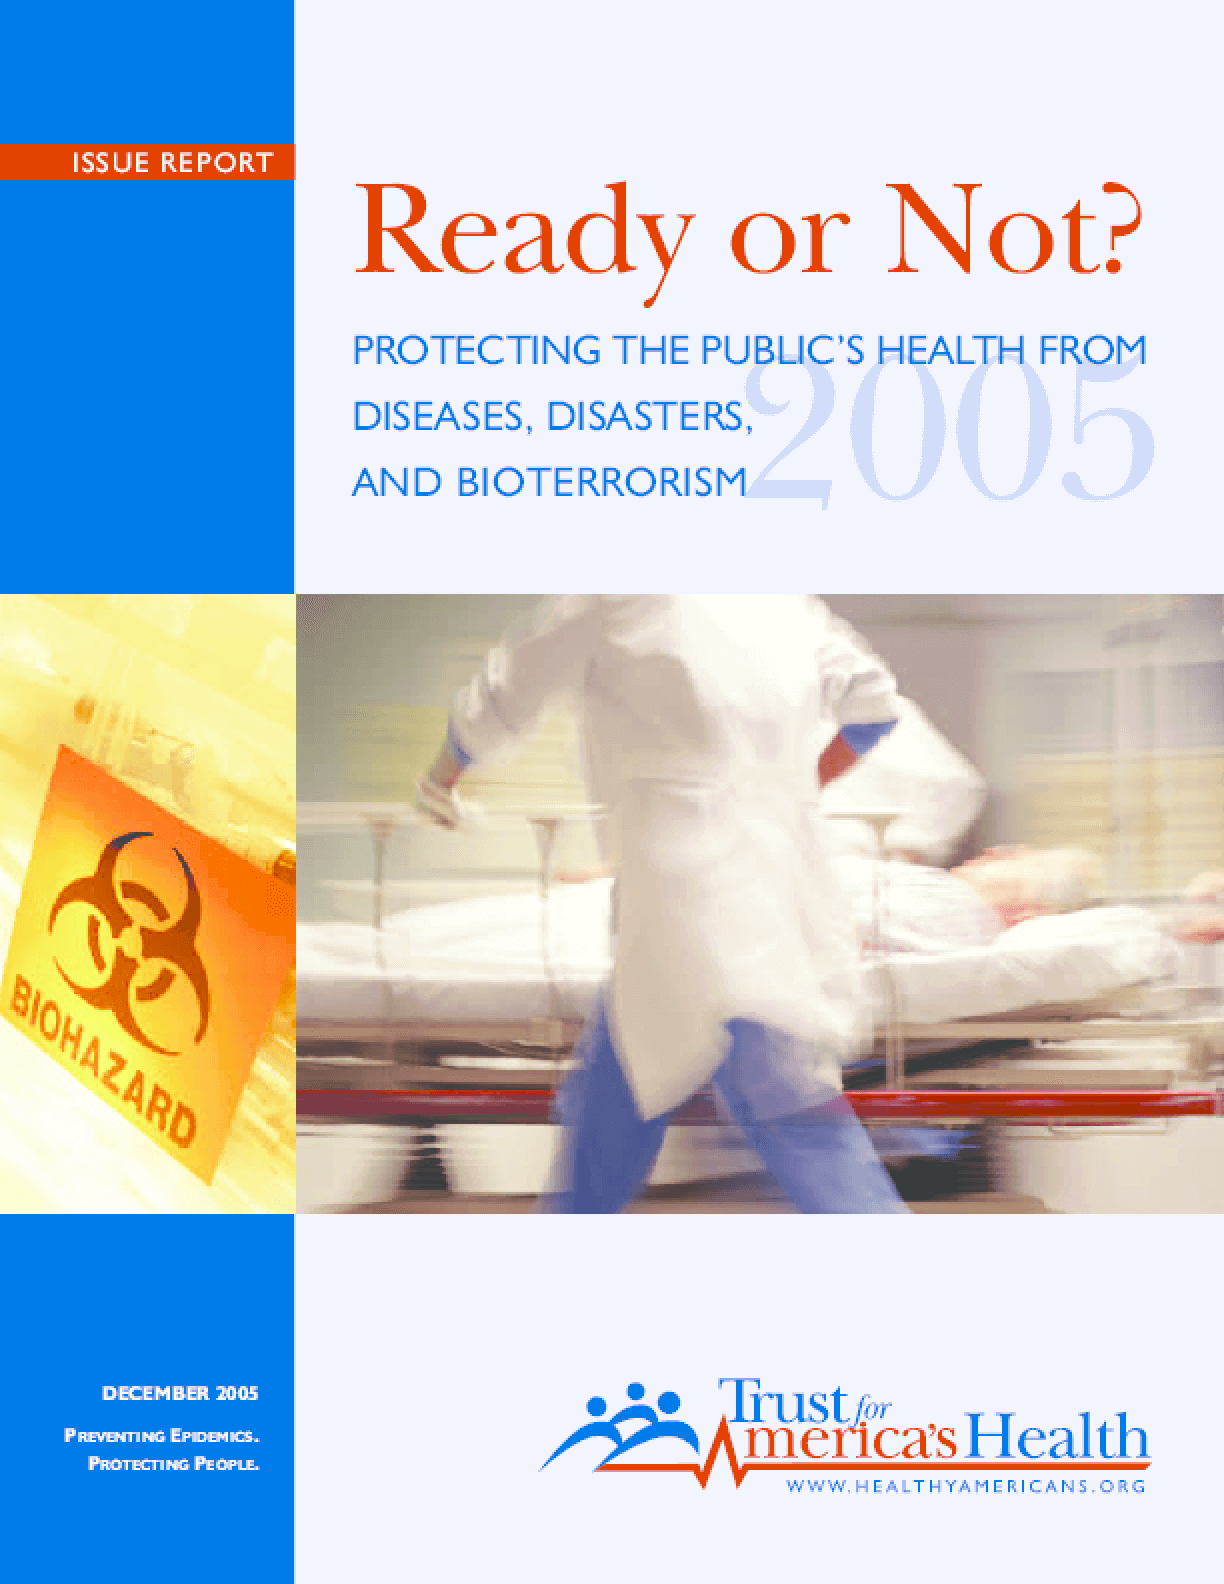 Ready or Not? Protecting the Public's Health in the Age of Bioterrorism, 2005